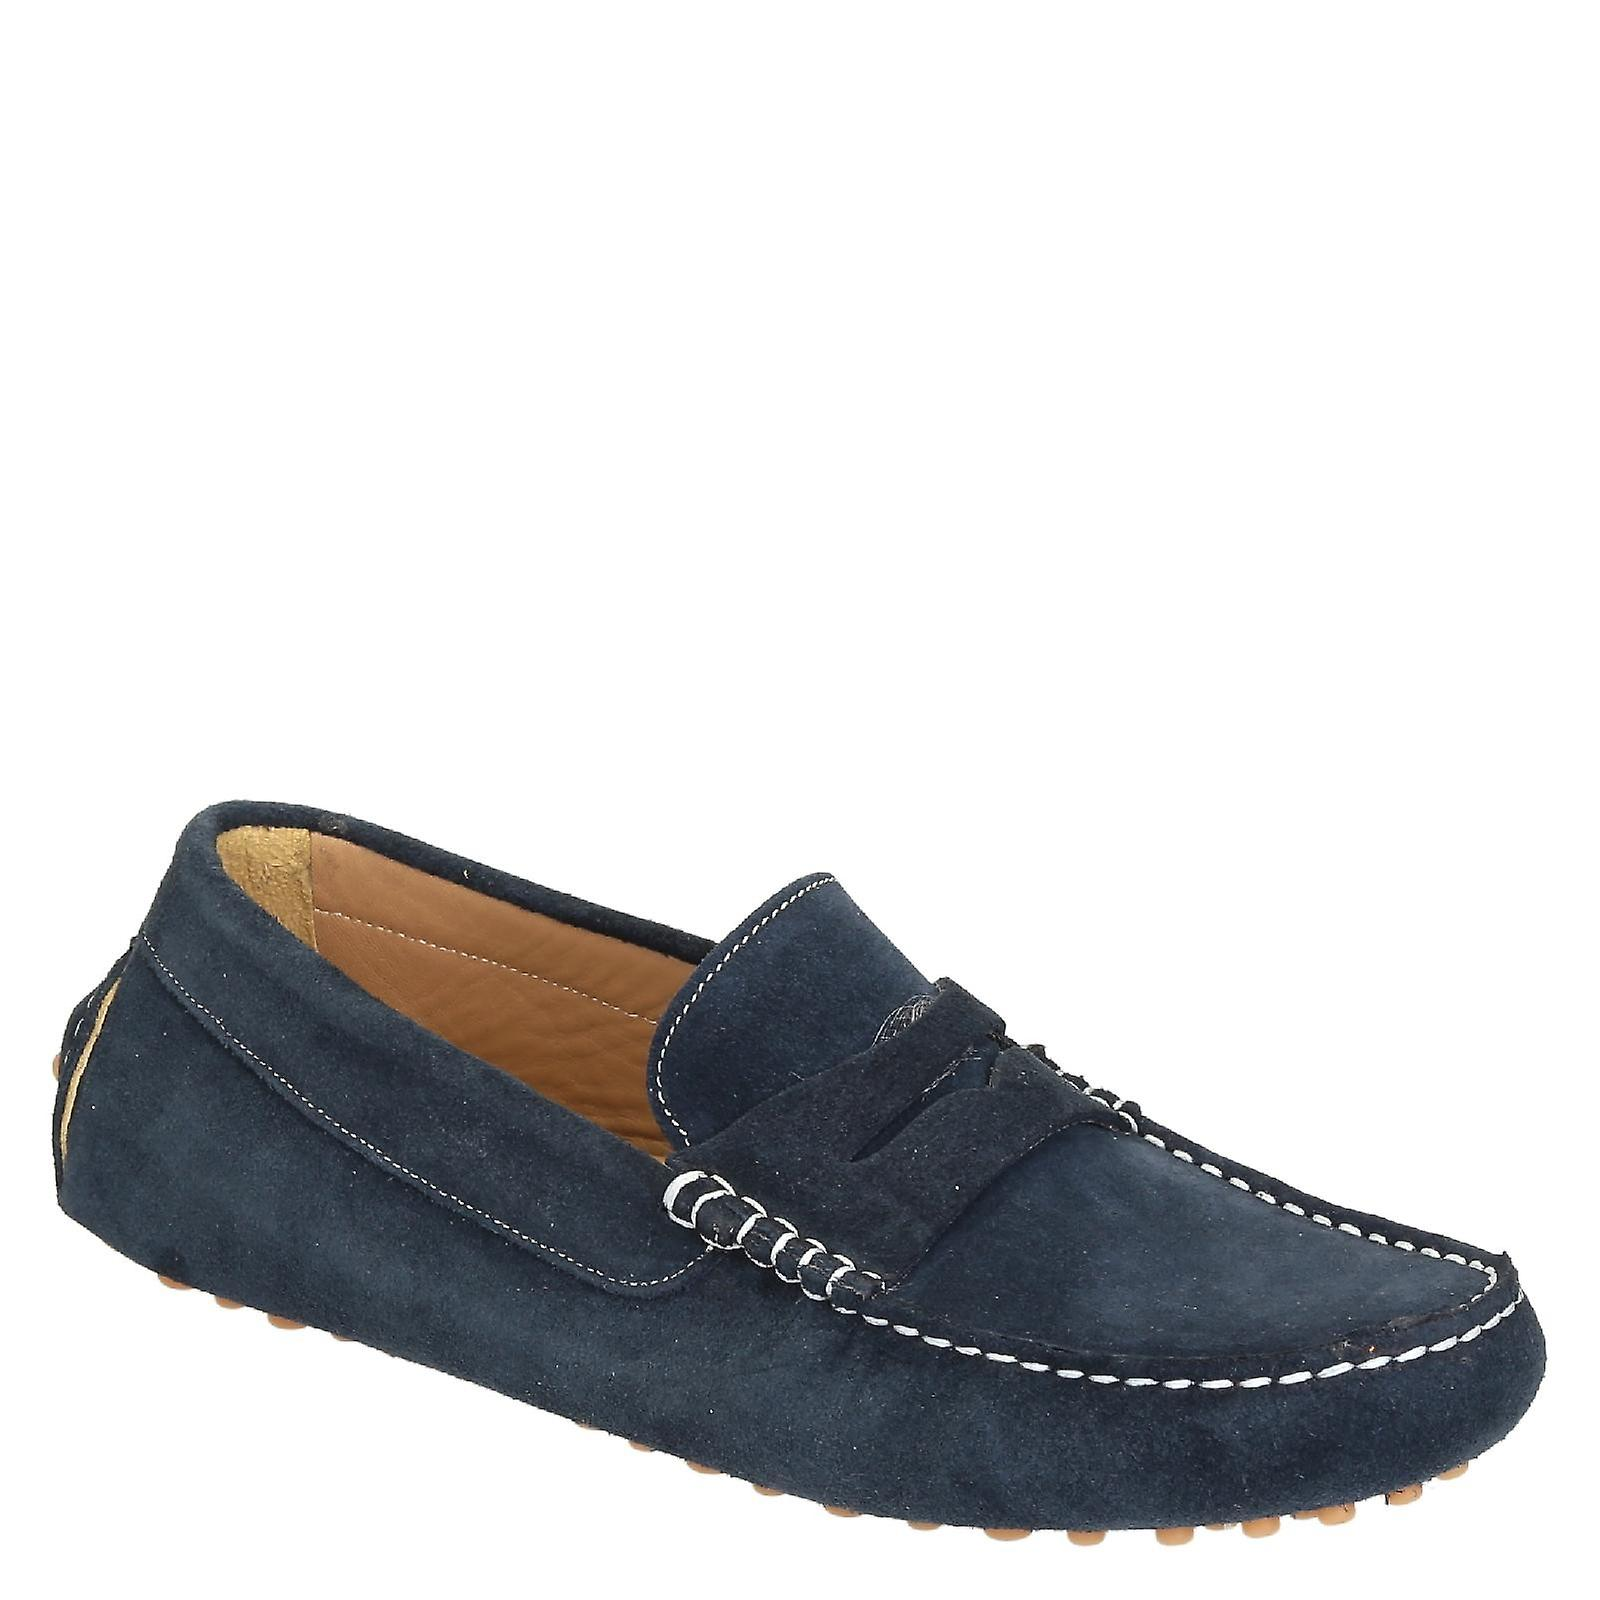 suede in Blue driving Italy moccasins for men handmade xR8xzZfwq6